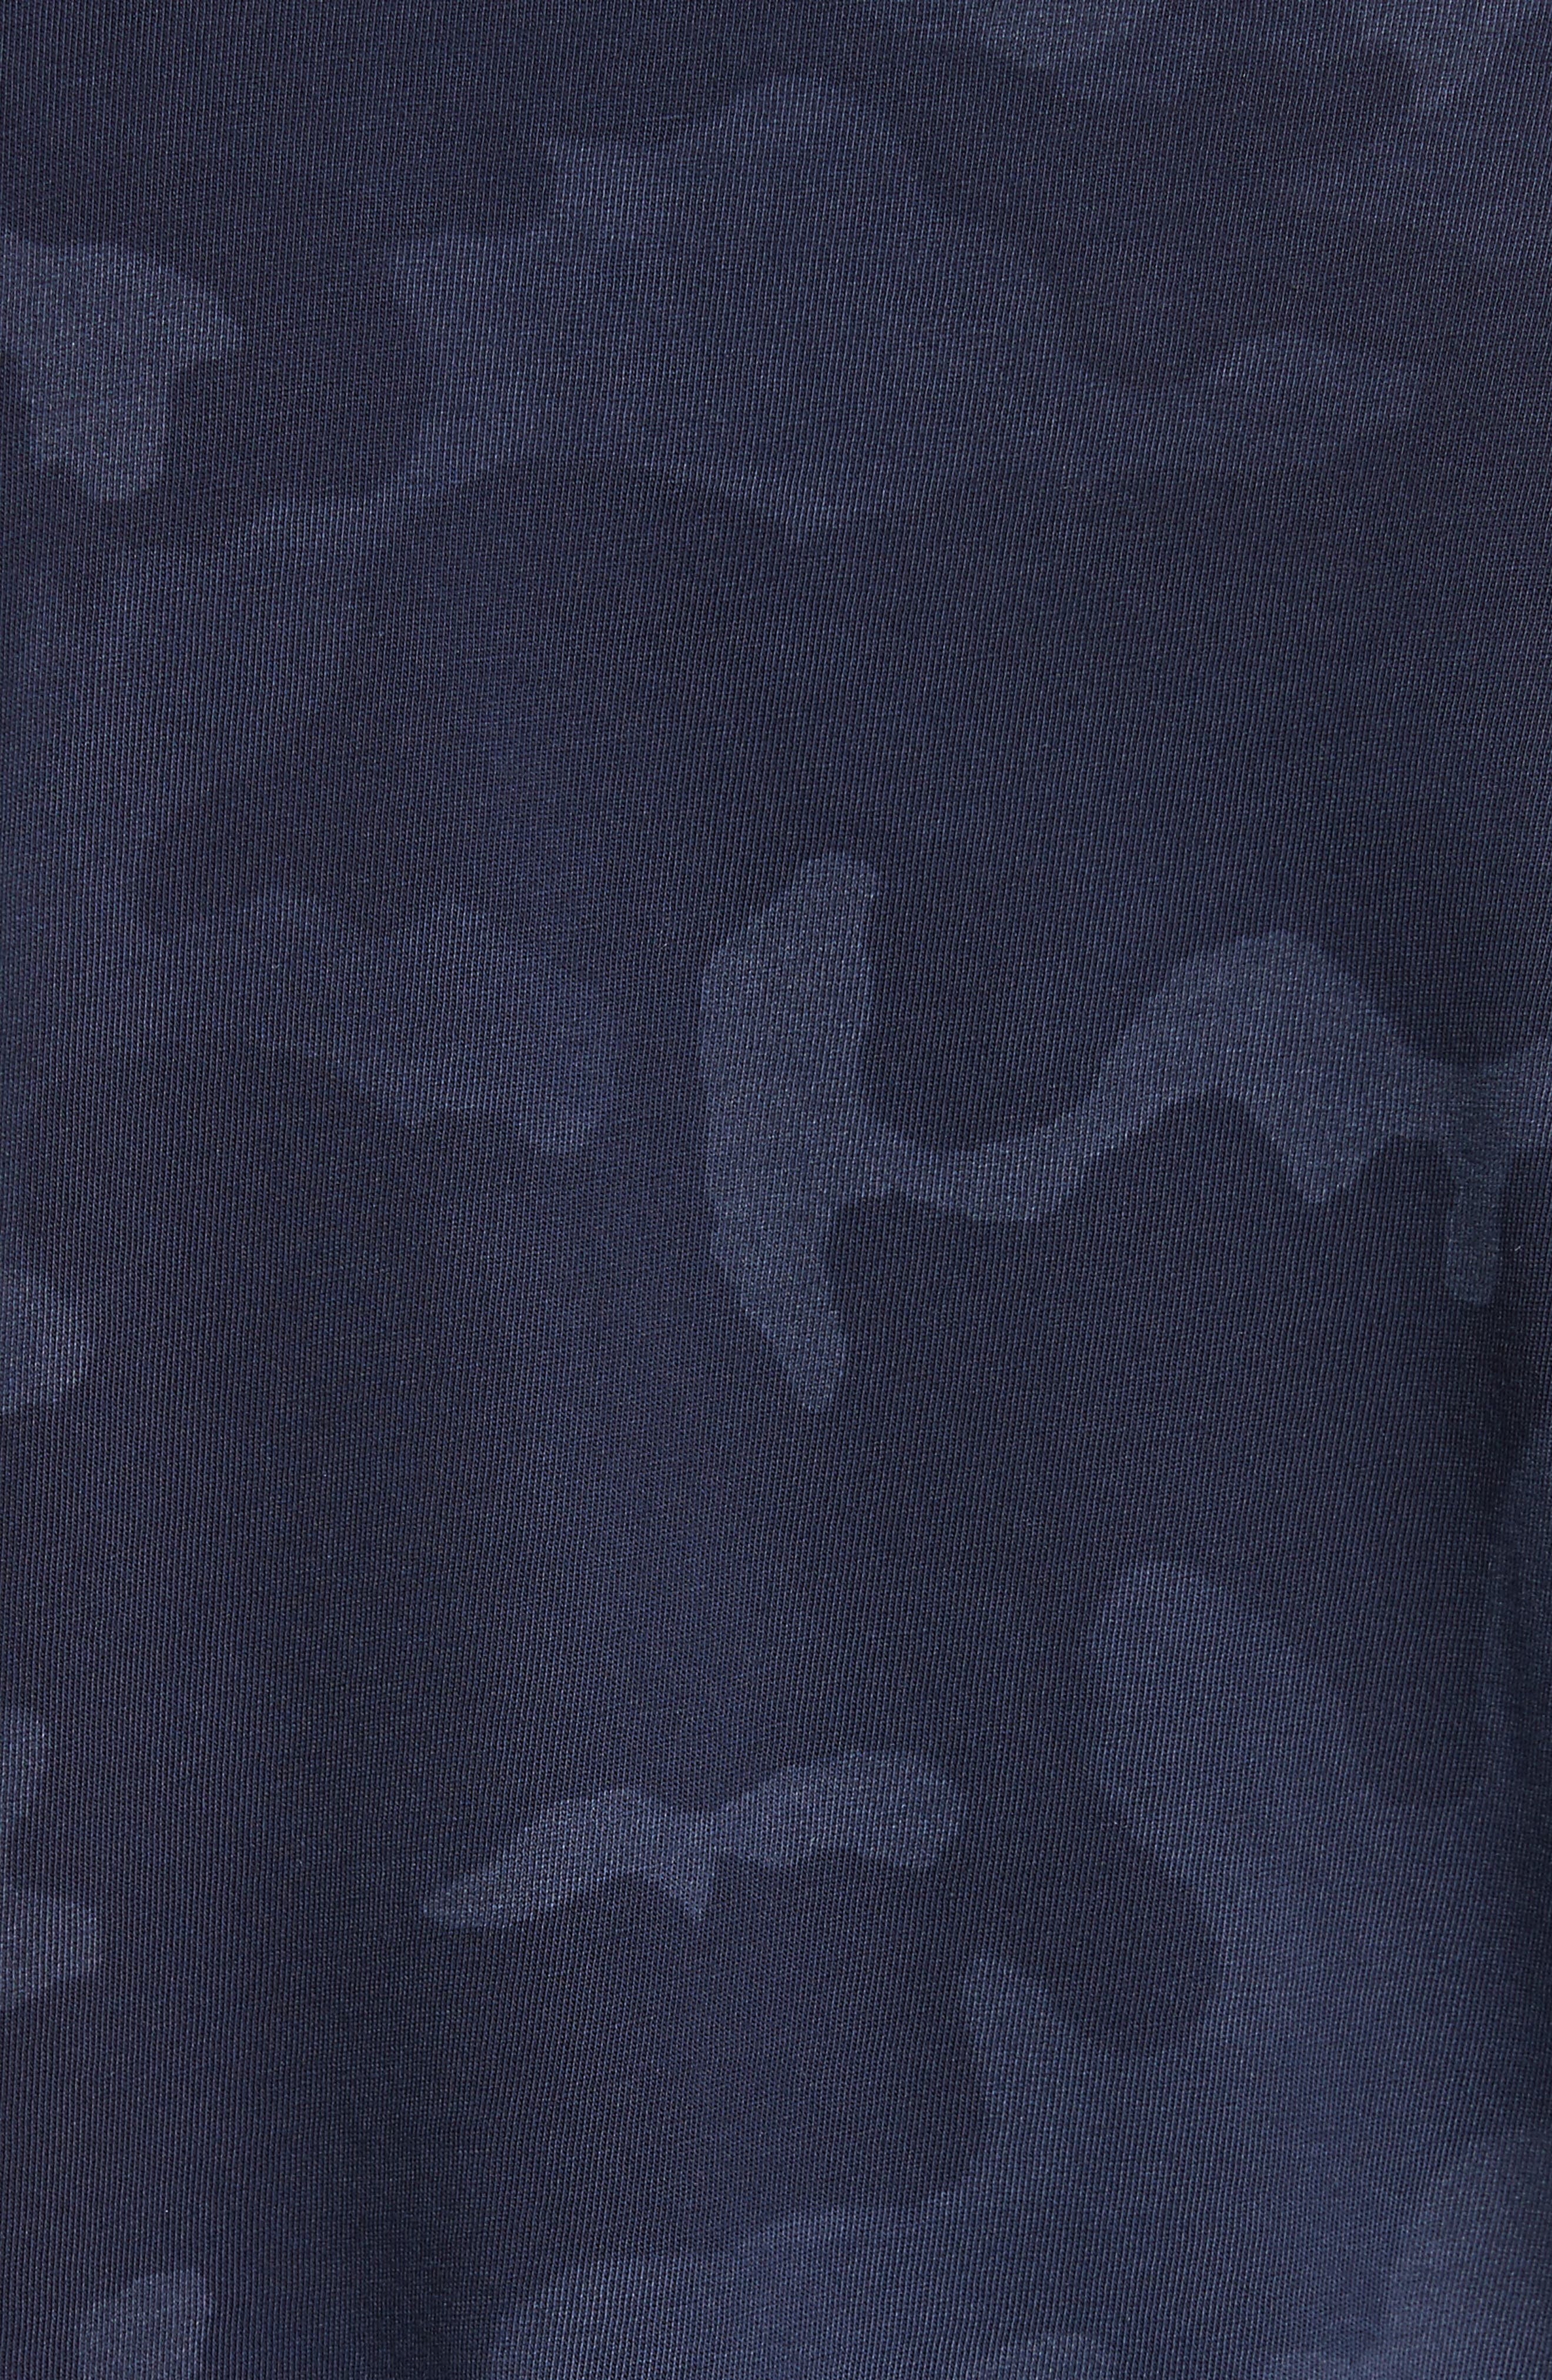 Camouflage Print Cotton Tee,                             Alternate thumbnail 5, color,                             Blue Camo